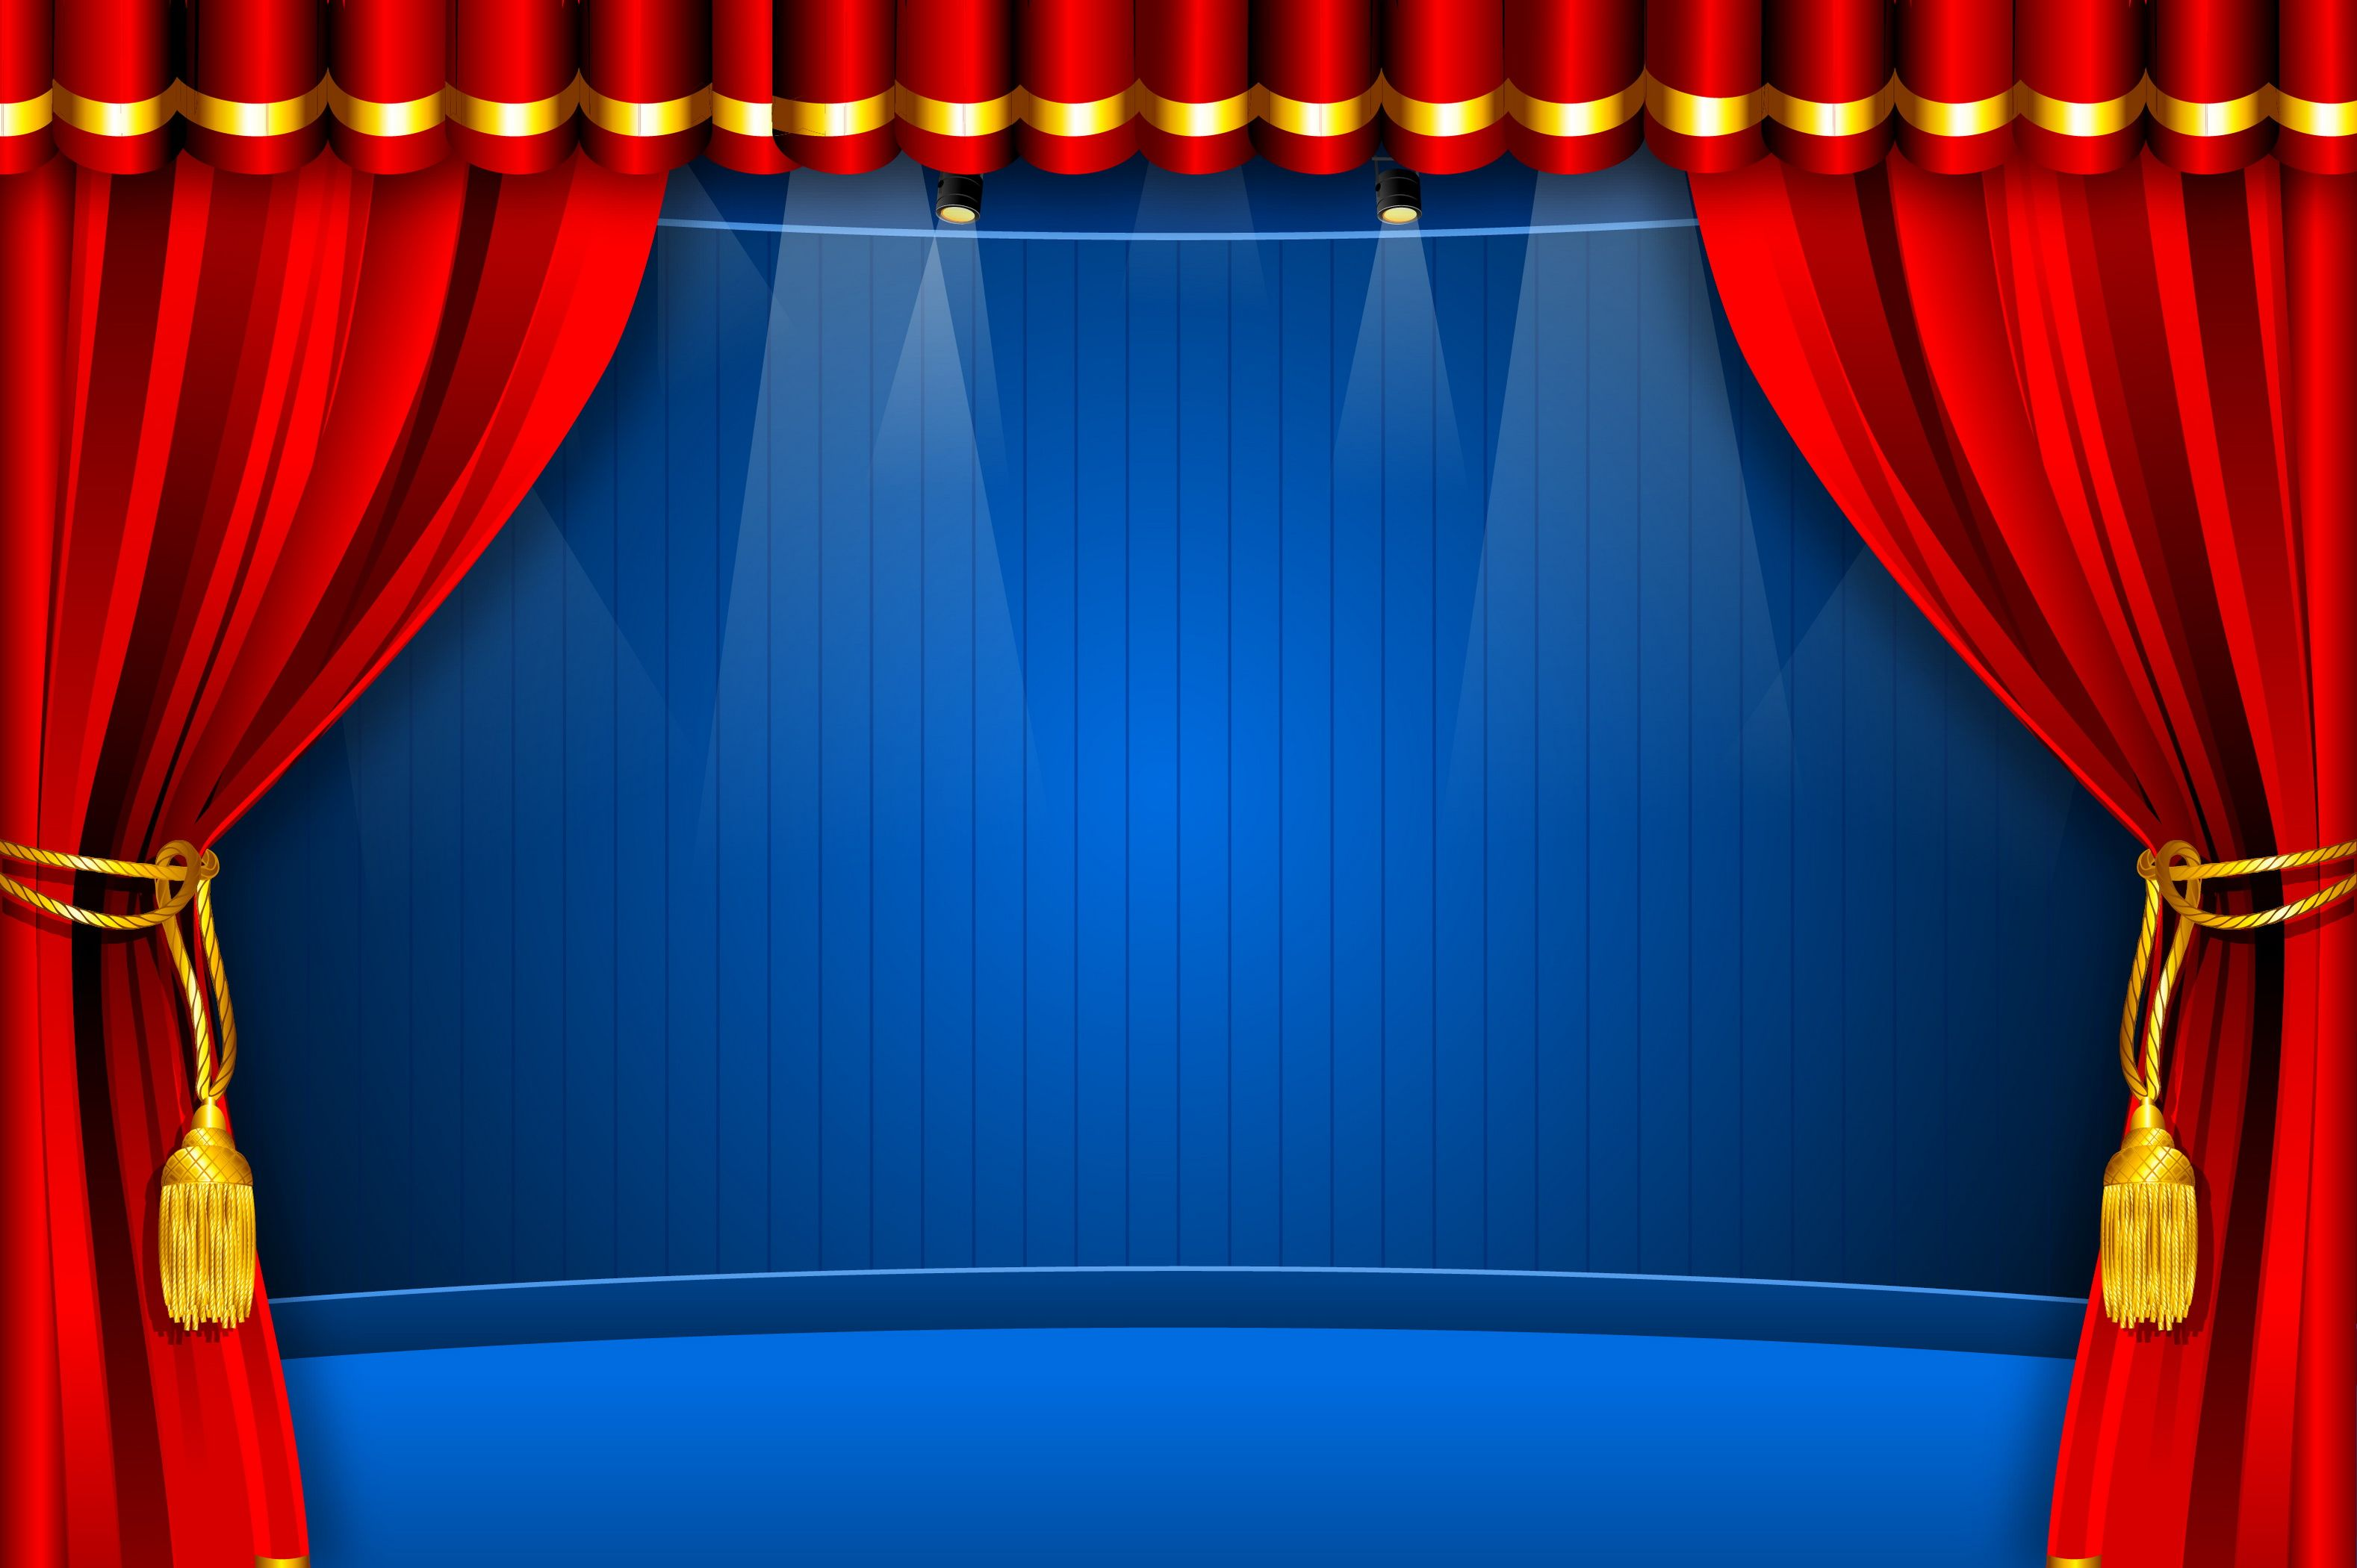 Stage Curtain In 2020 Stage Curtains Red Curtains Backdrops